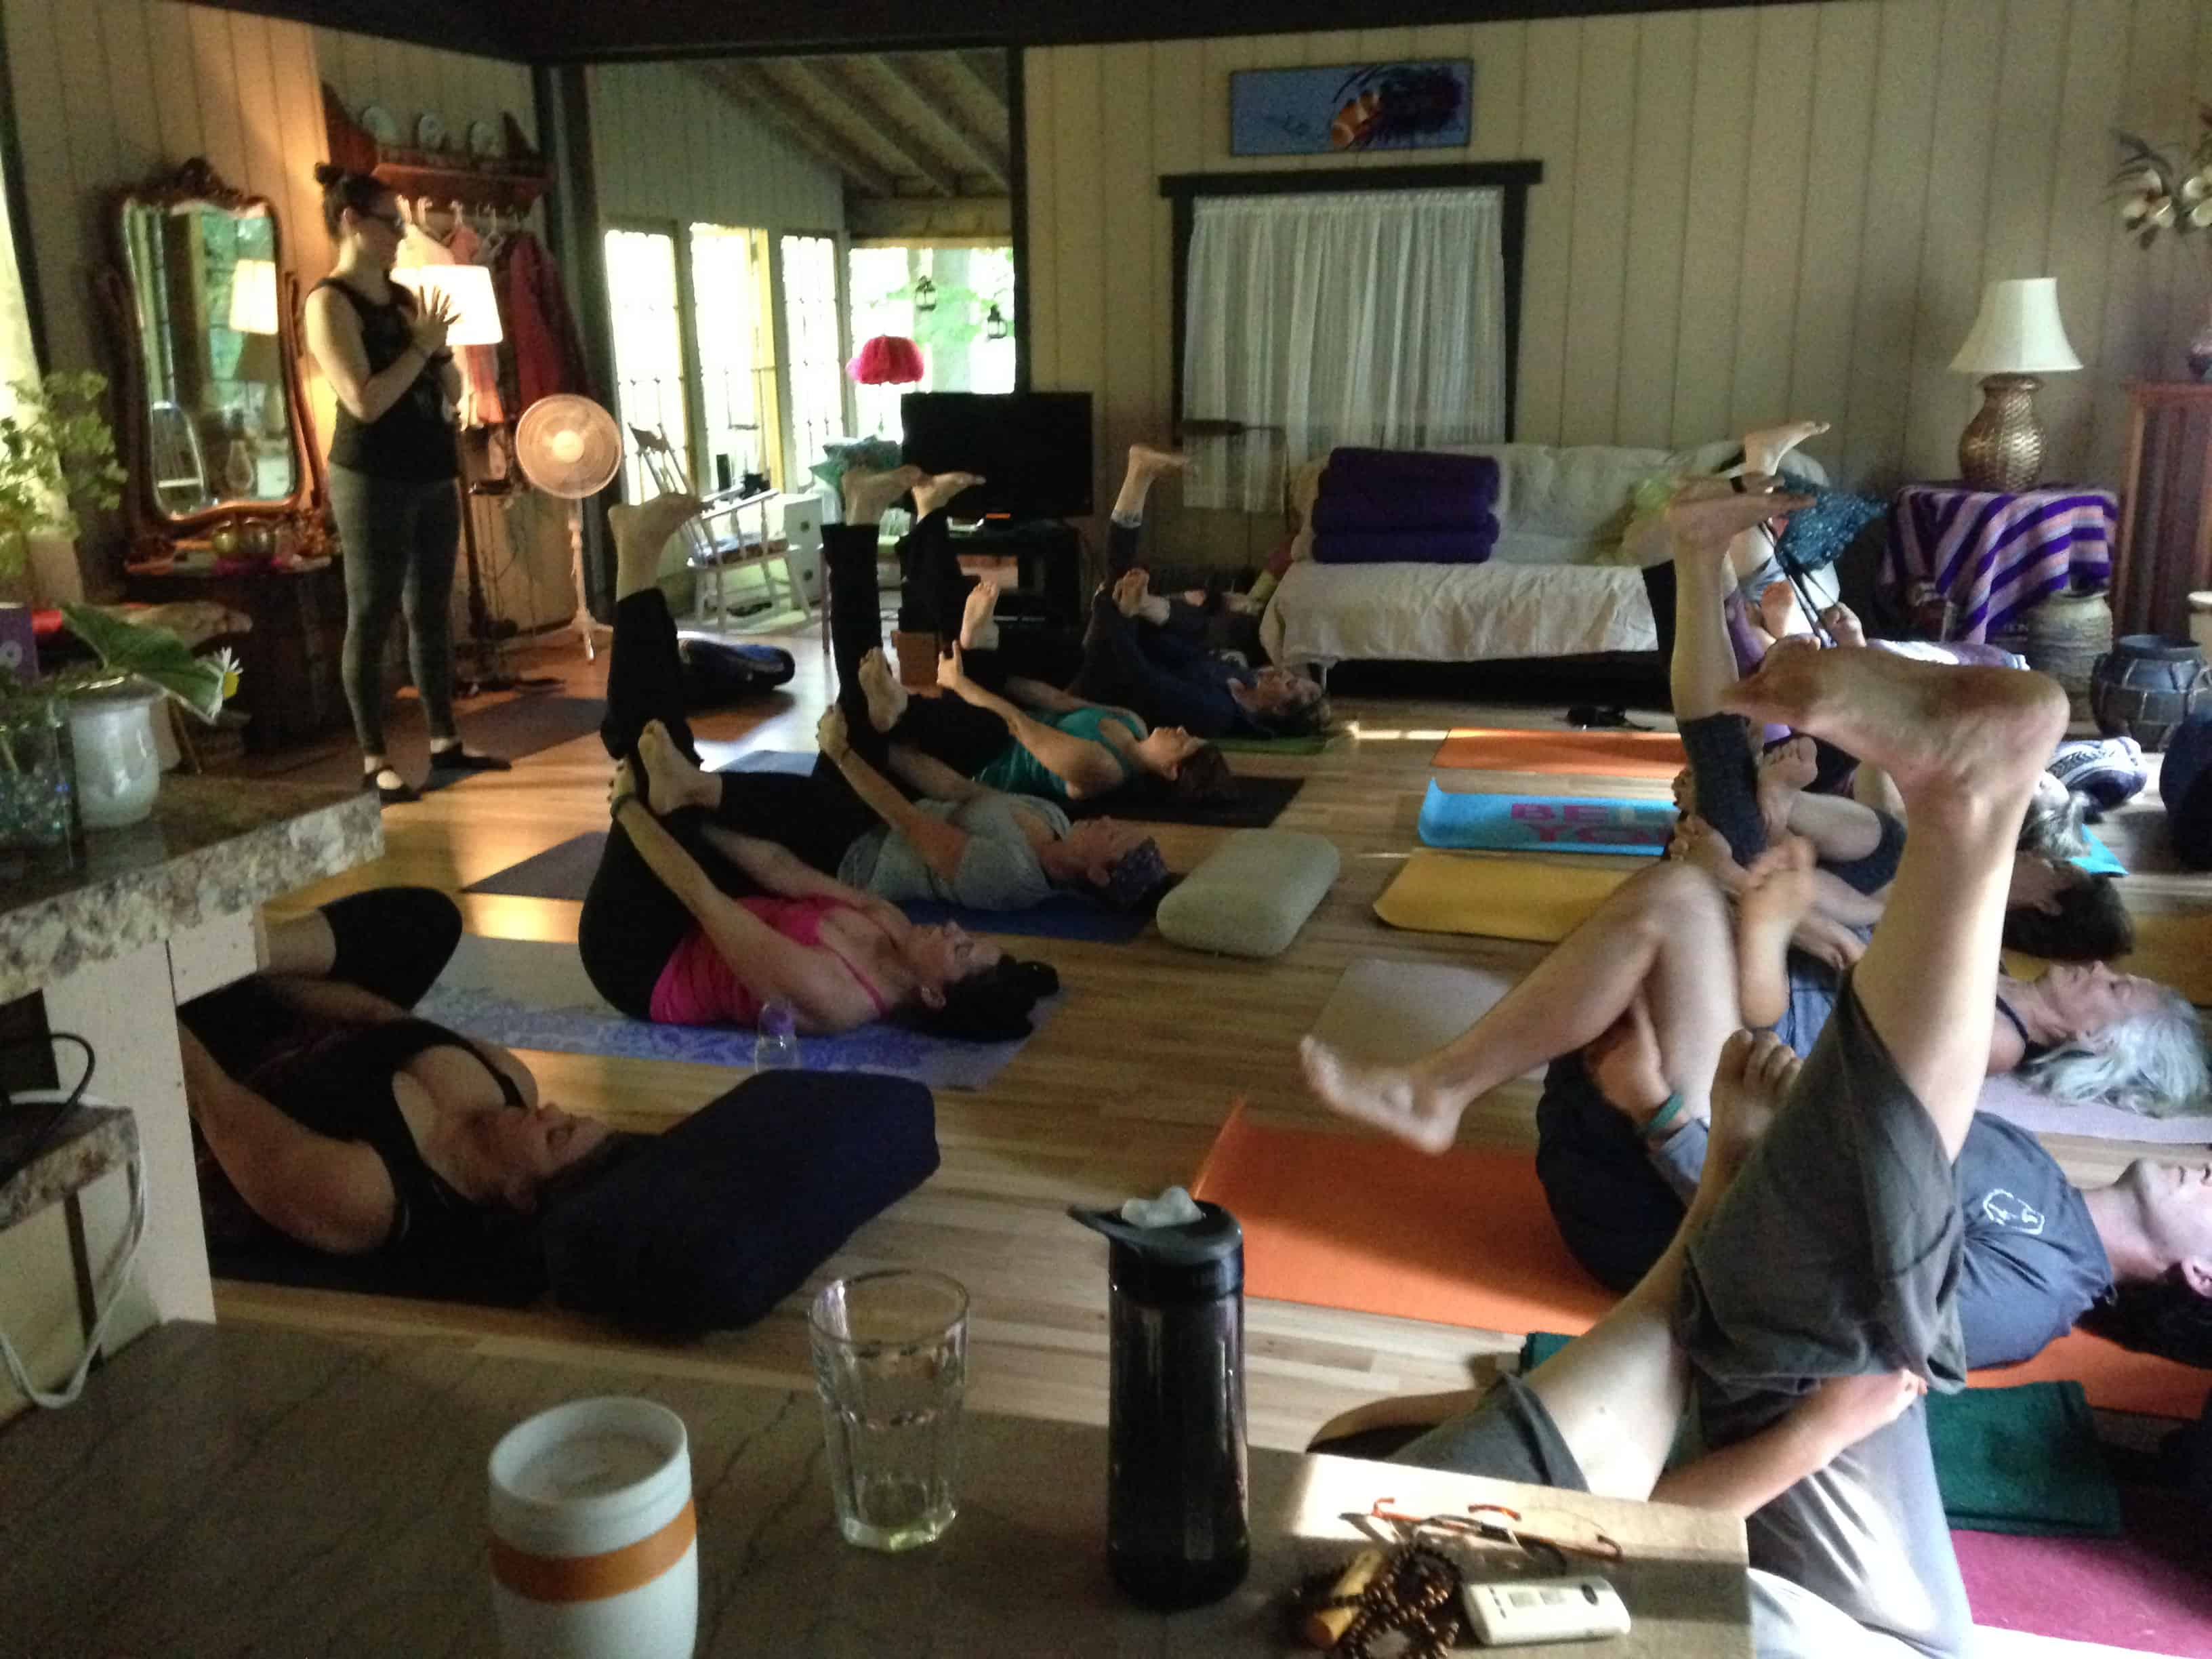 Yoga class in the barn